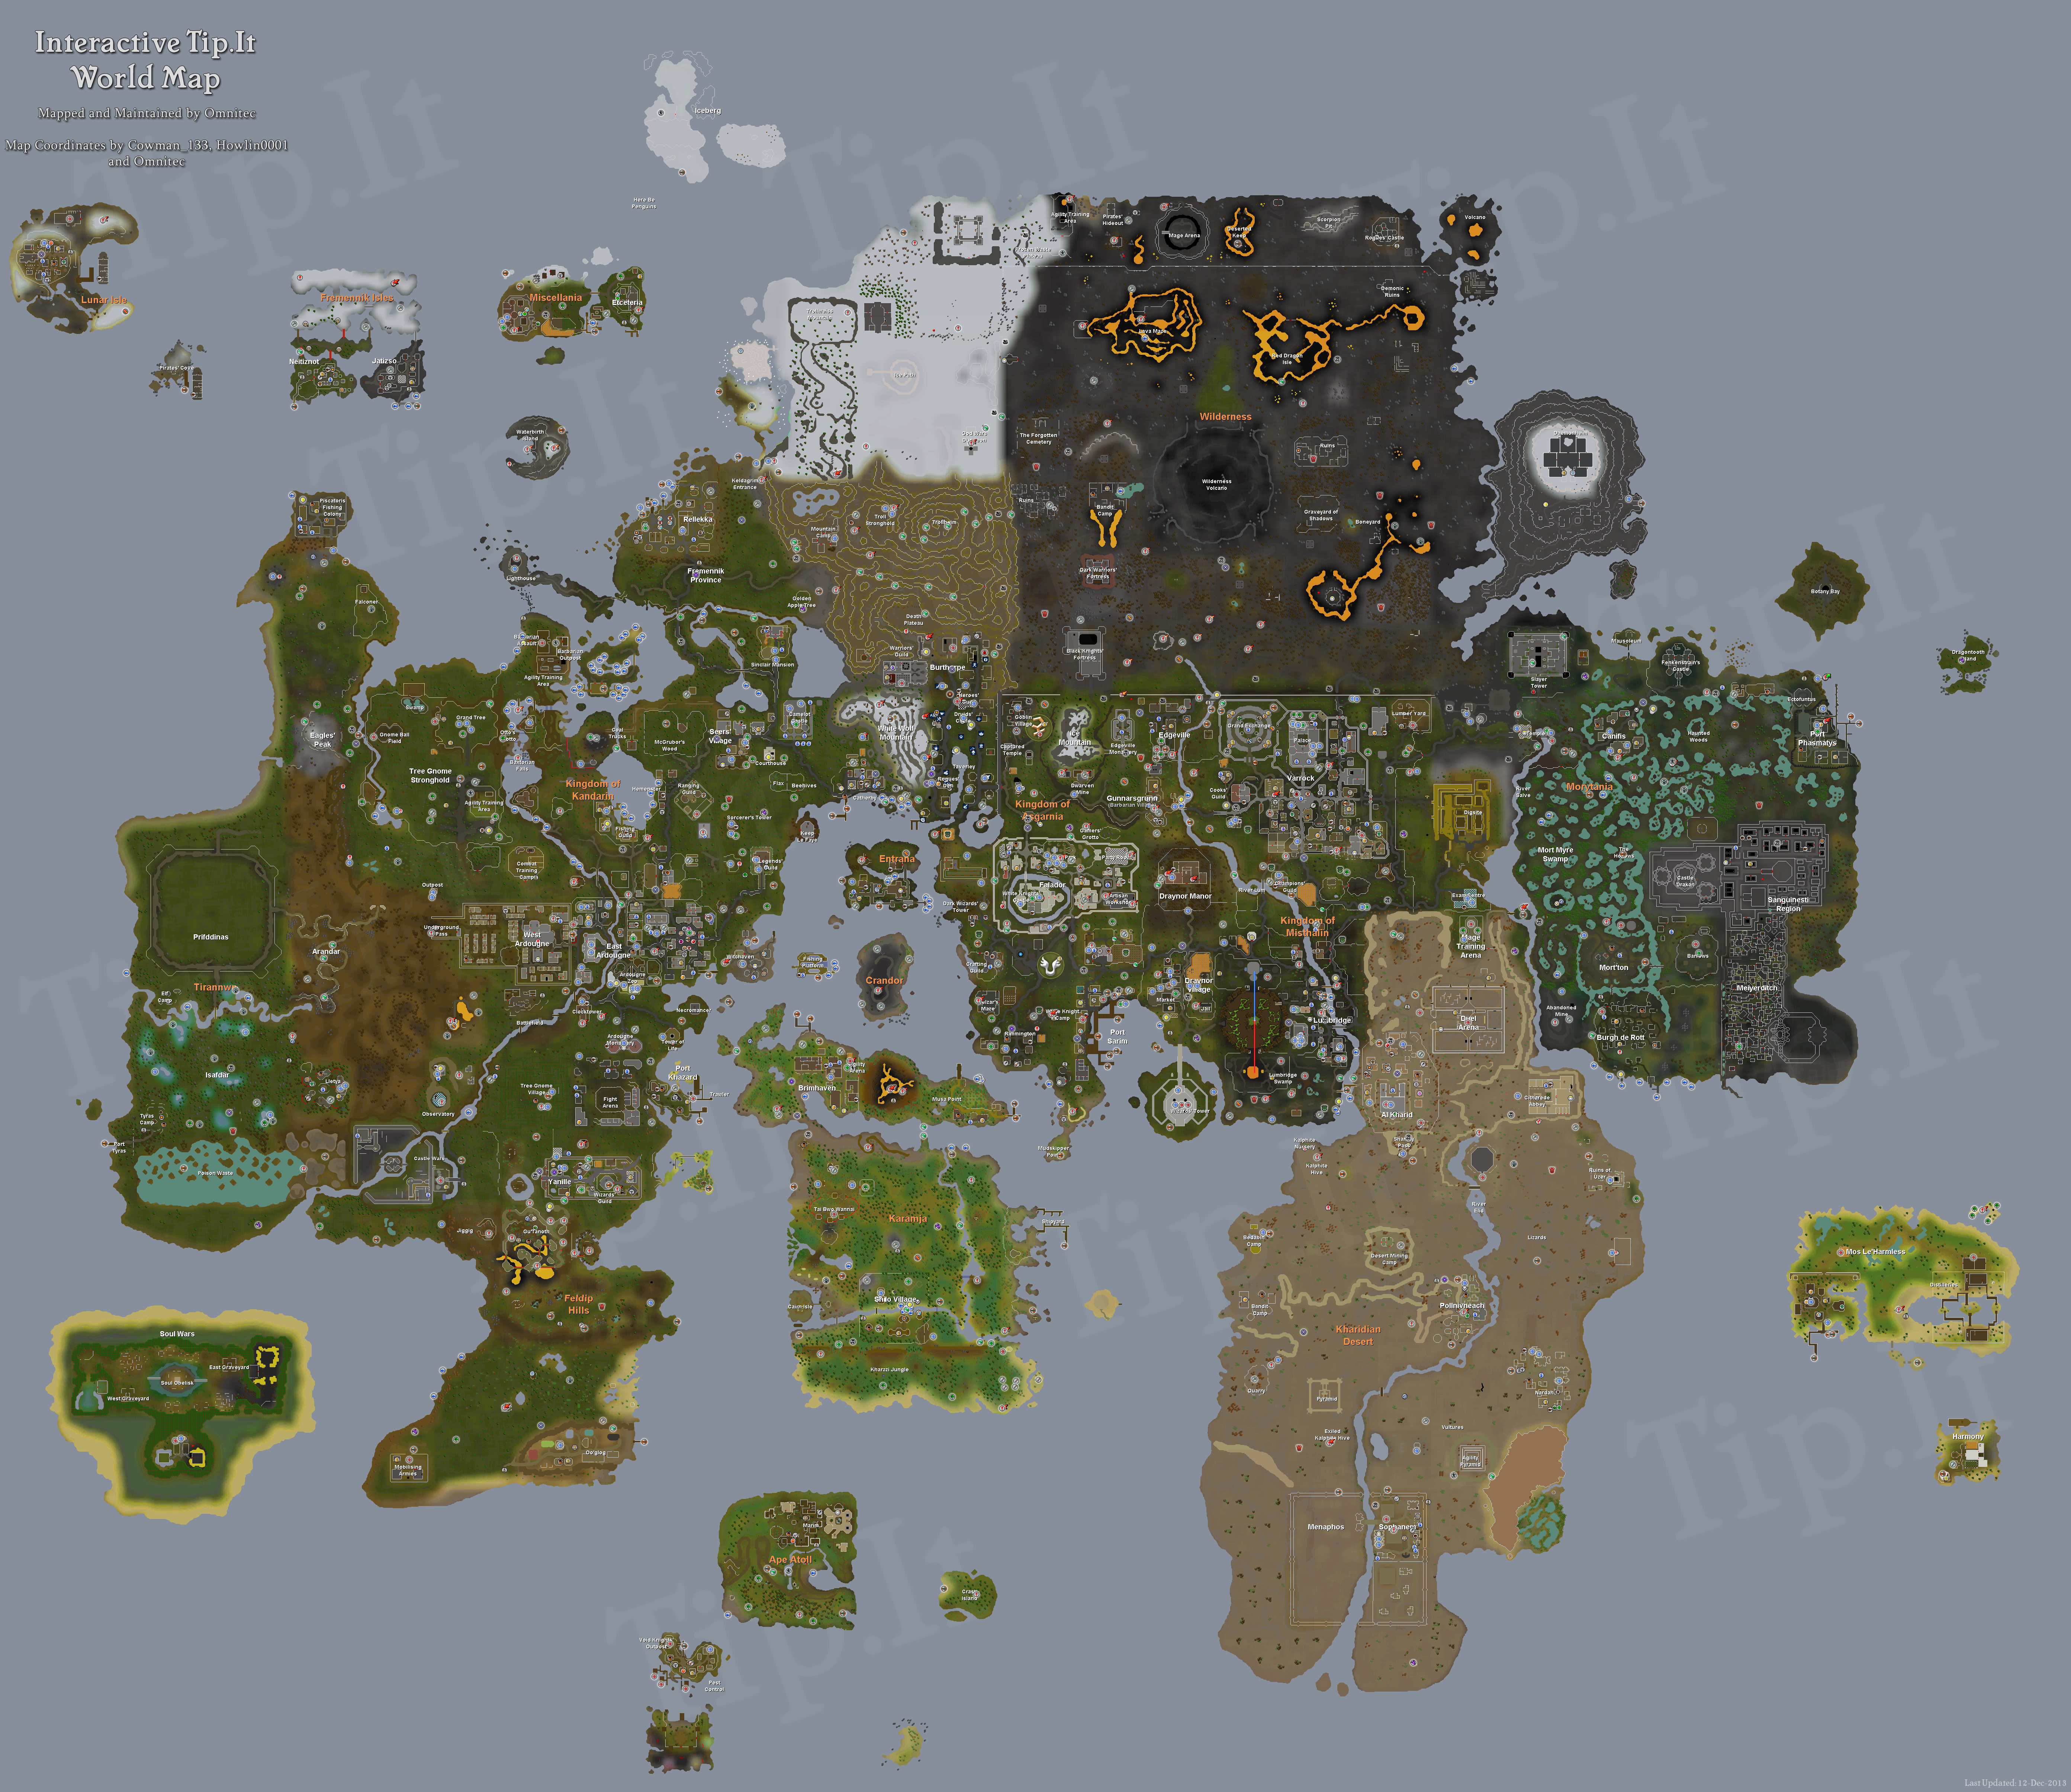 runescape world map poster Tip It Runescape Help Full World Map The Original Runescape